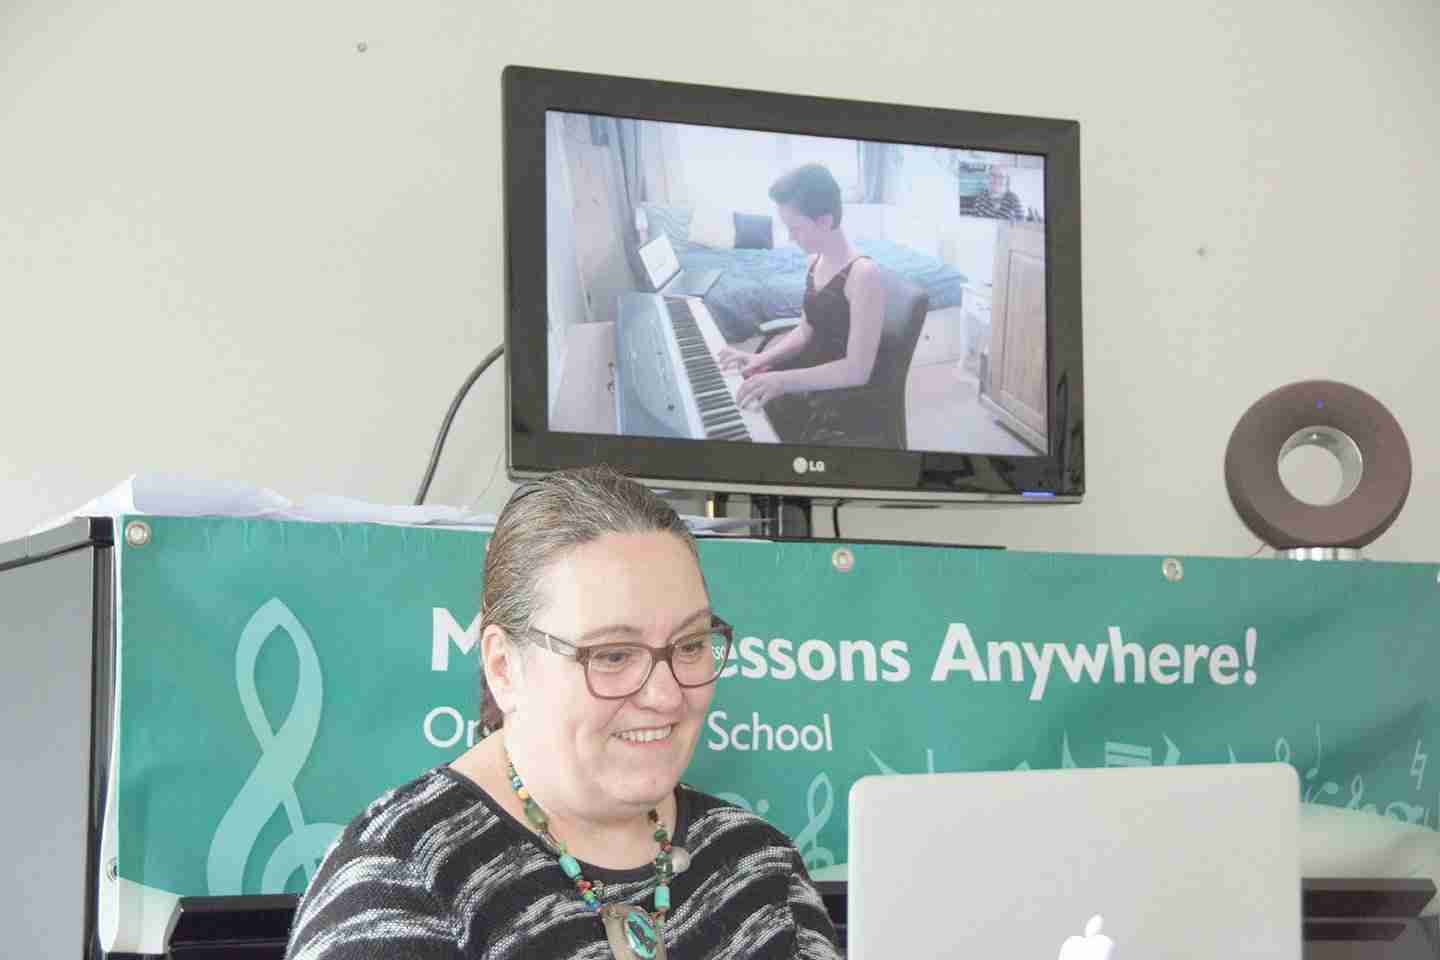 Music Lessons Anywhere Skype advanced piano lessons live online